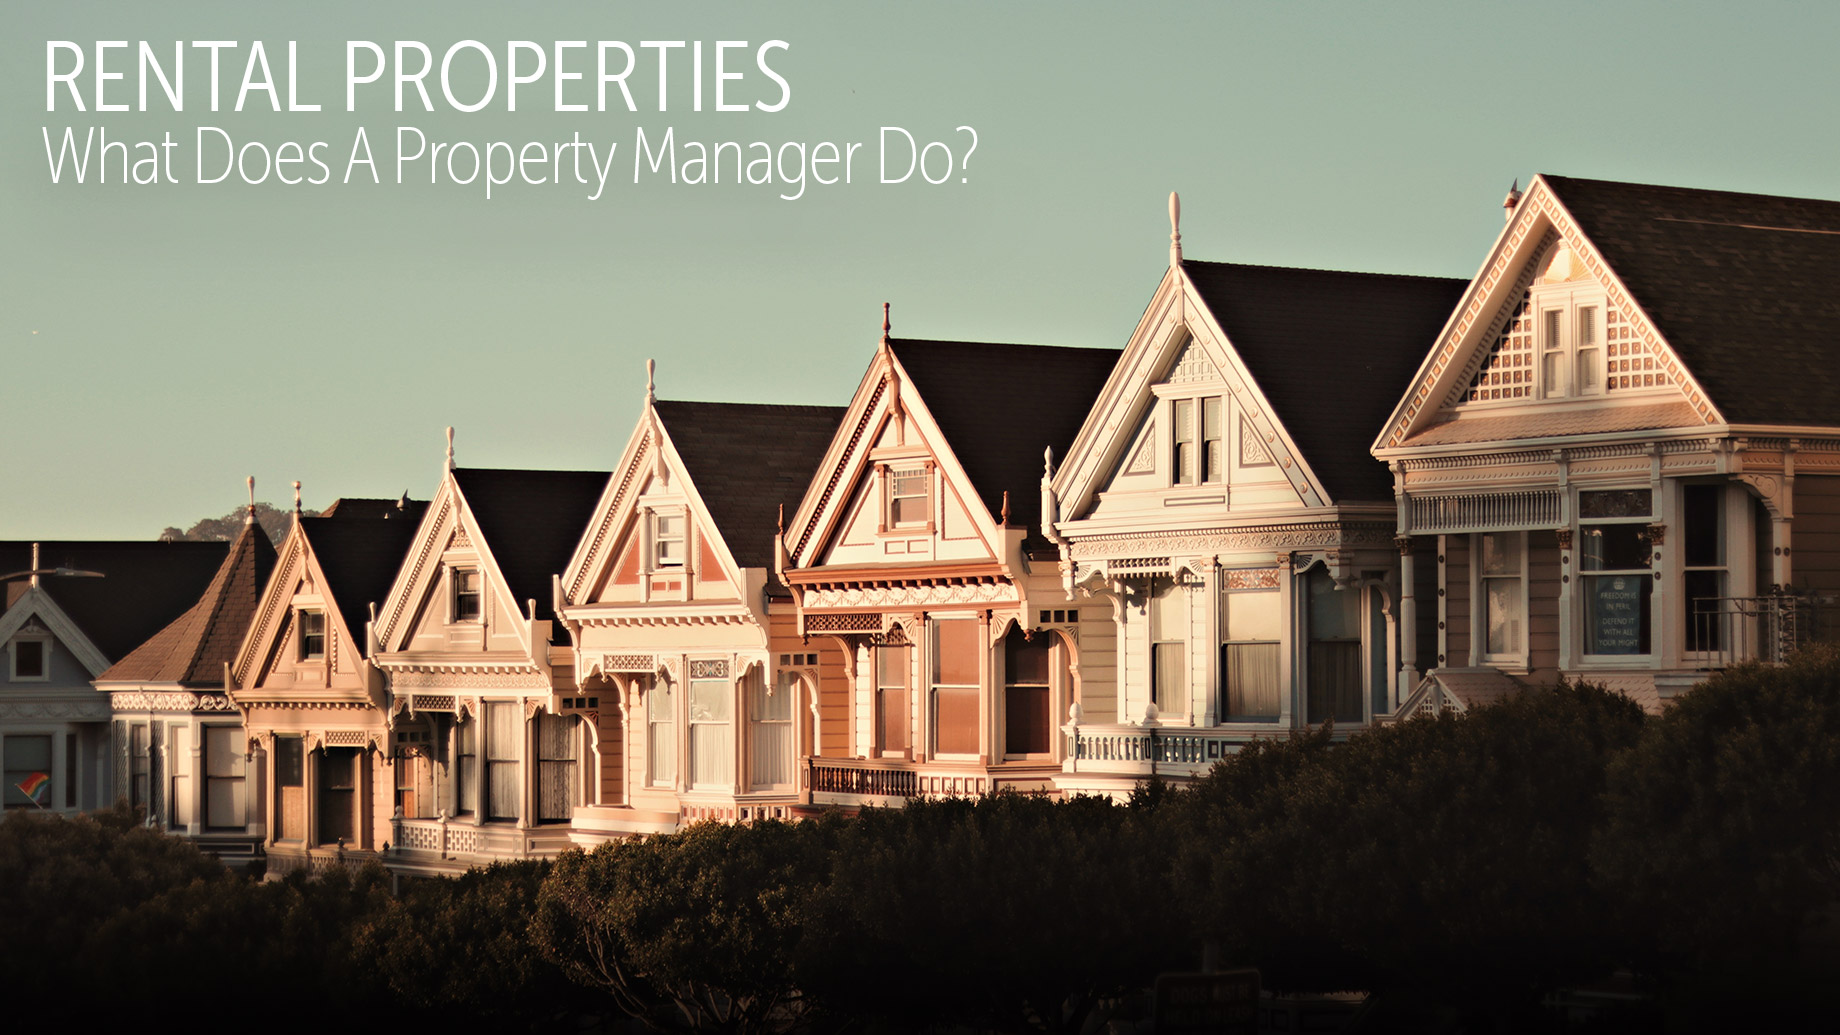 Rental Properties - What Does A Property Manager Do?